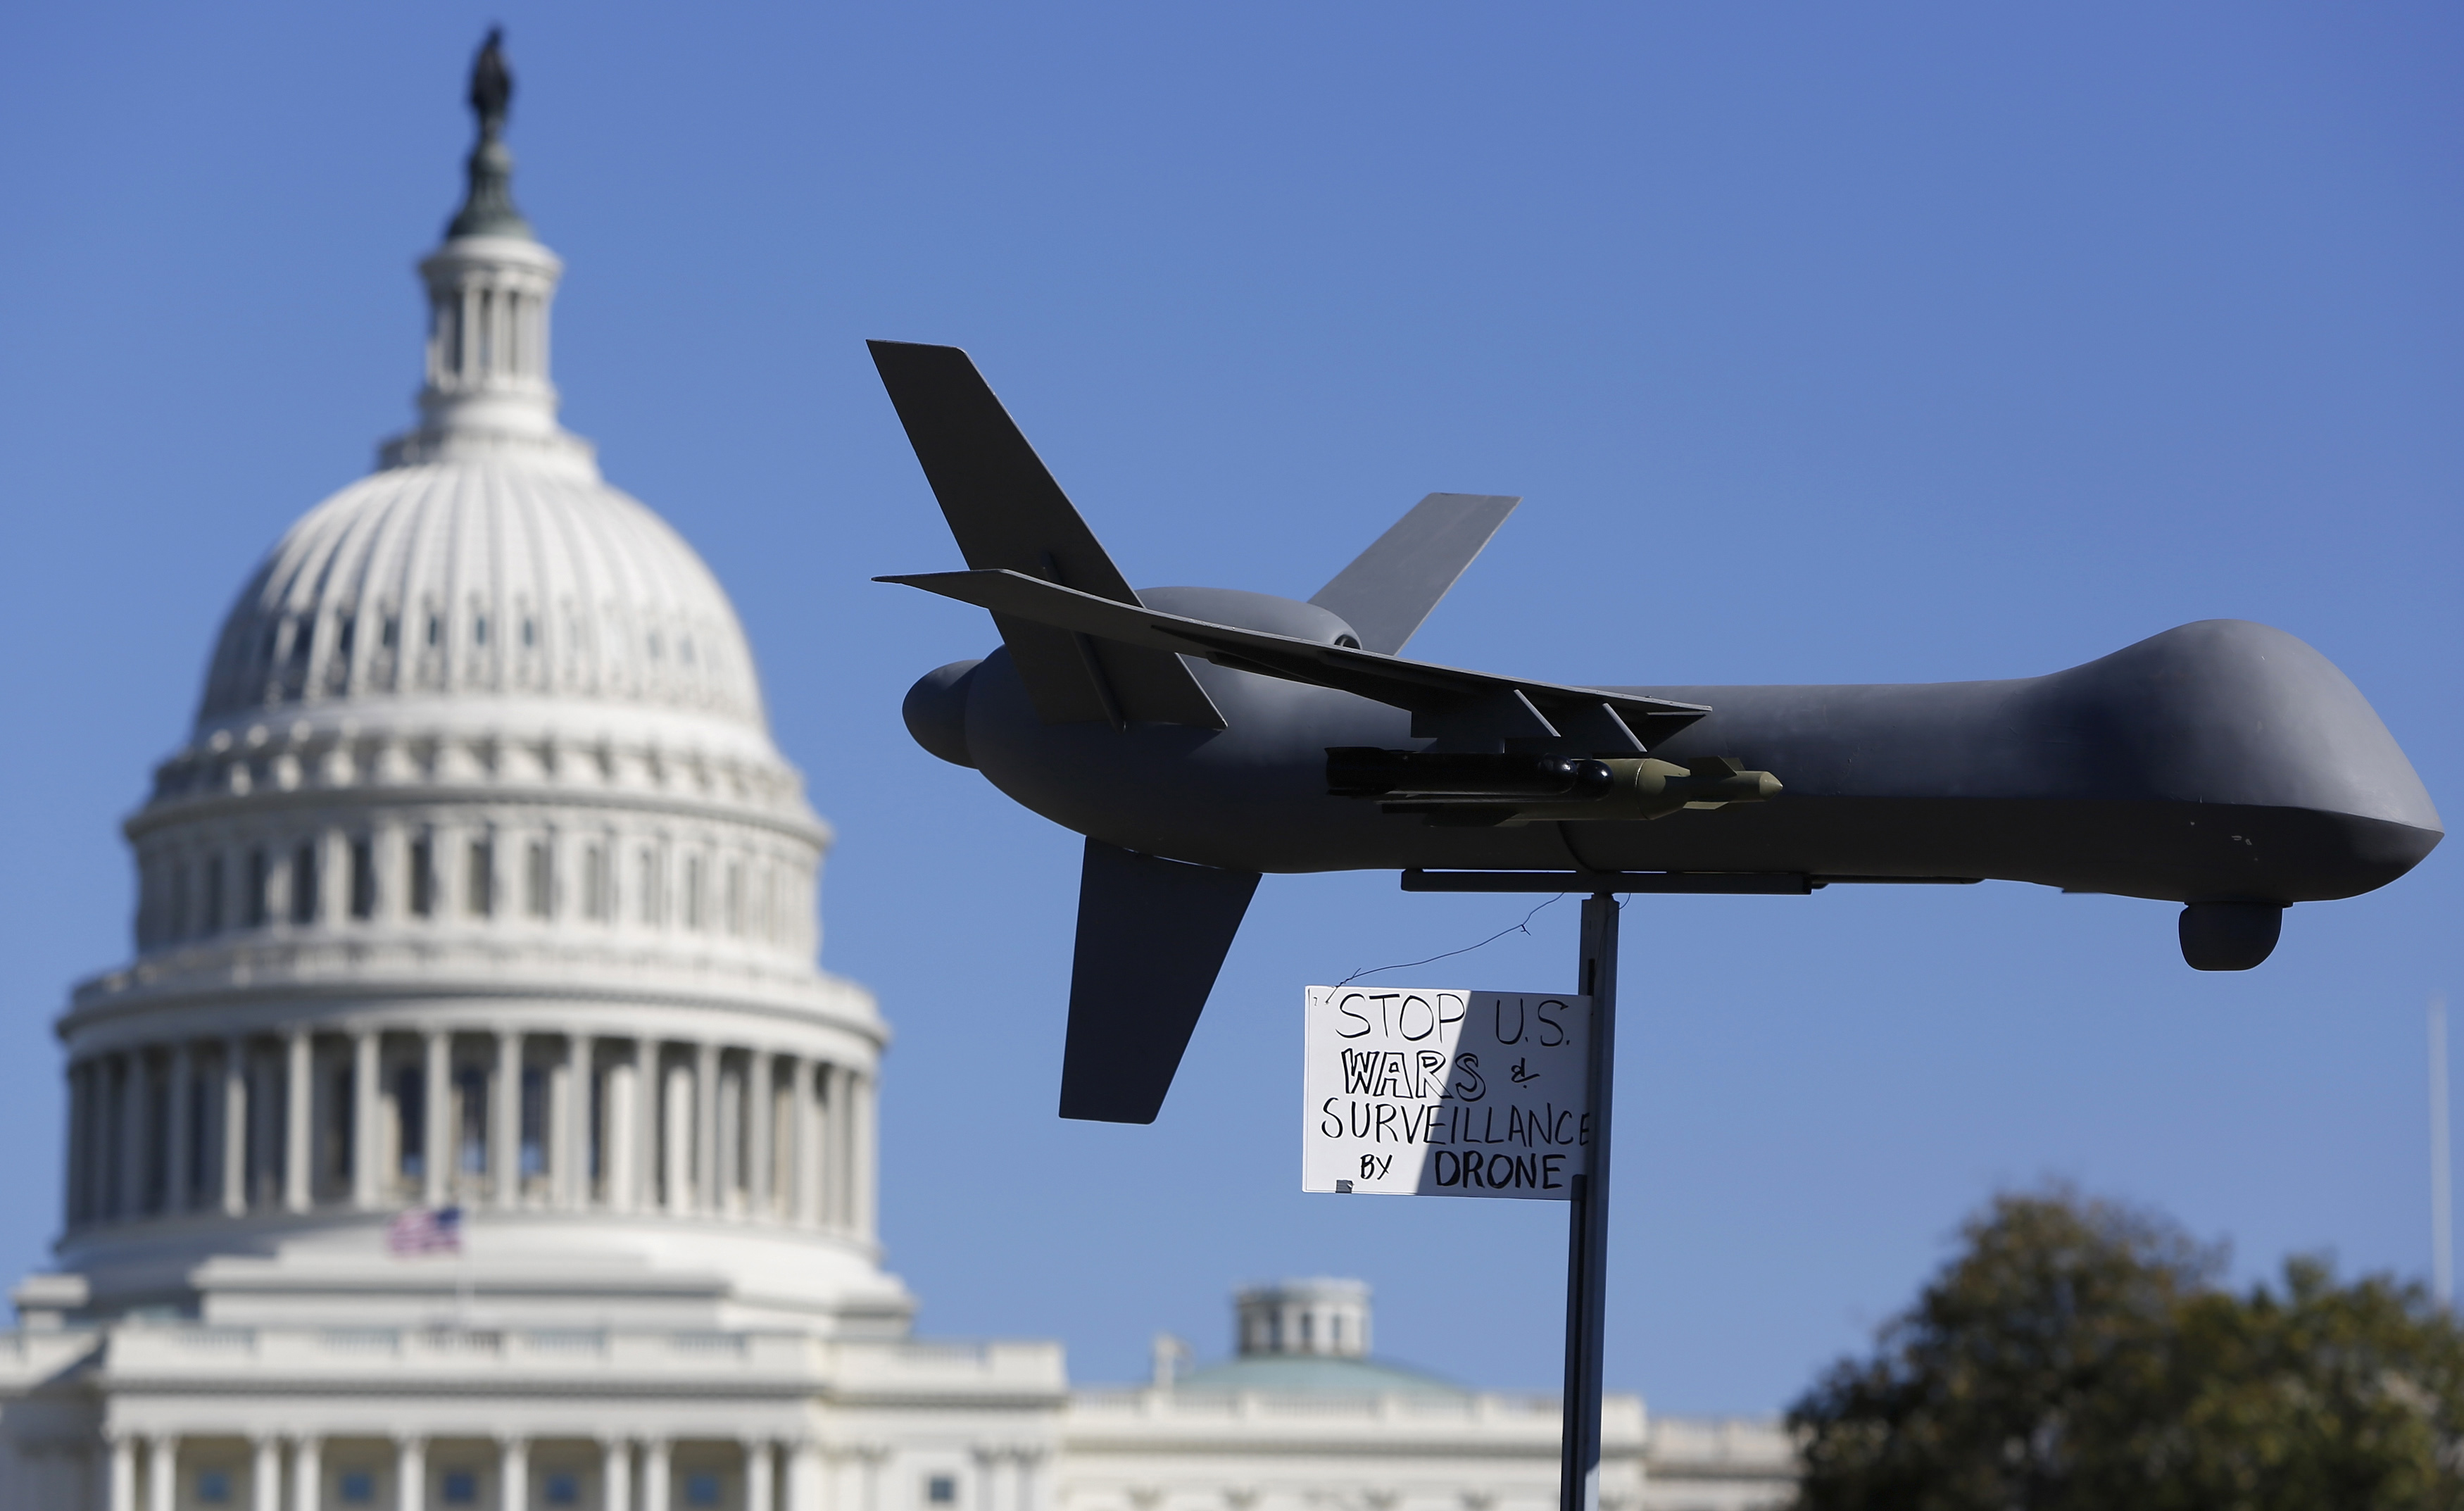 Demonstrators deploy a model of a U.S. drone aircraft at the  Stop Watching Us: A Rally Against Mass Surveillance  near the U.S. Capitol in Washington, Oct. 26, 2013